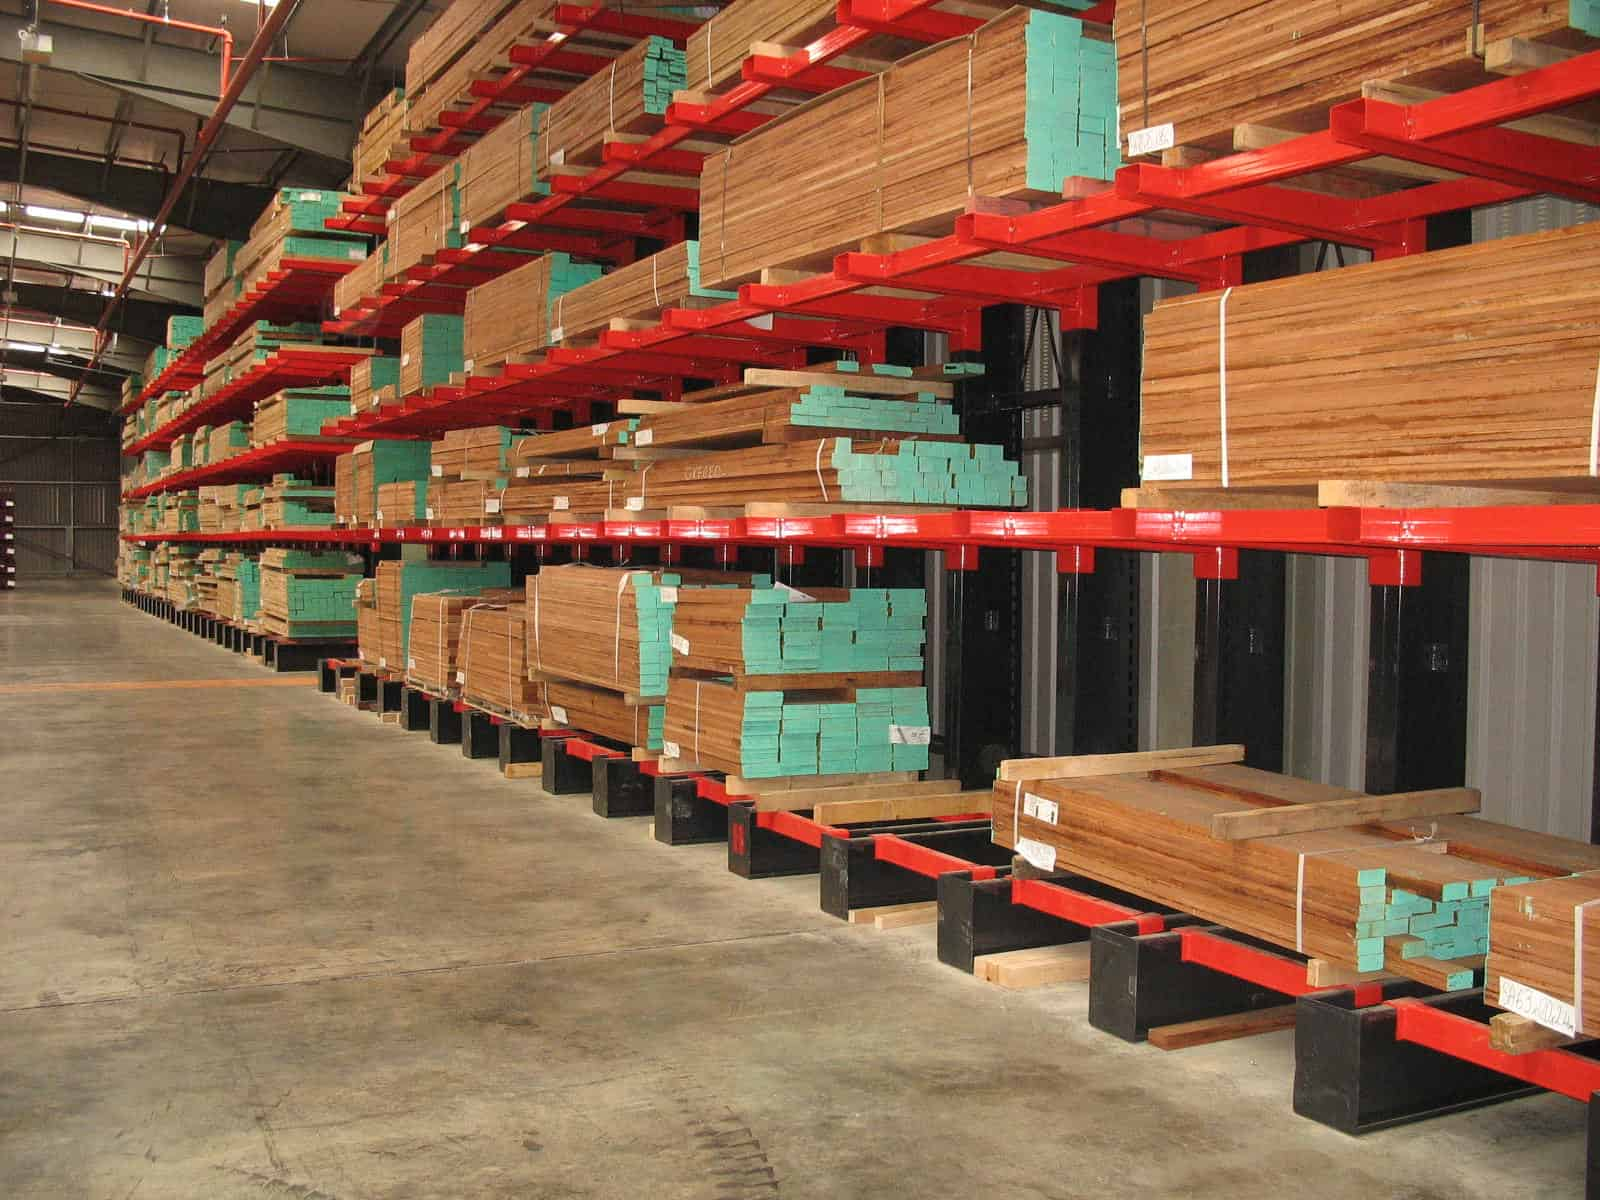 pallet racking used in warehouse